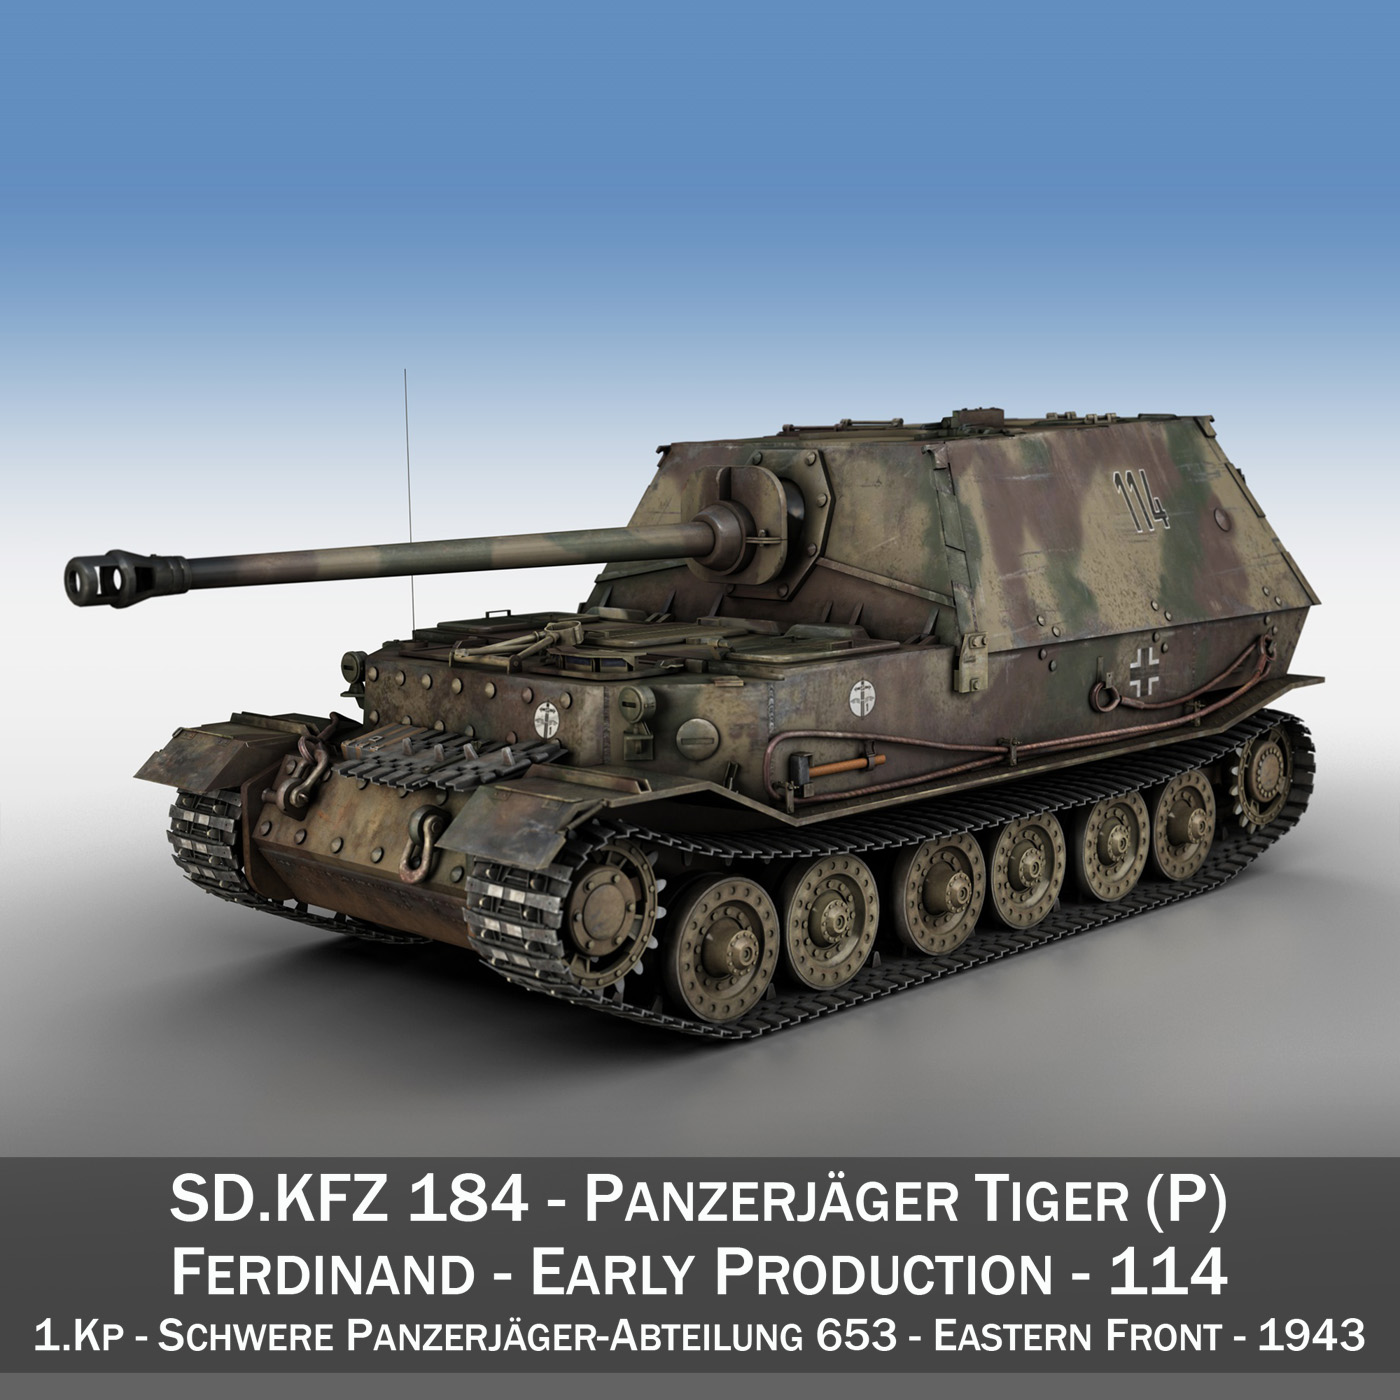 Ferdinand Tank destroyer - Tiger (P) - 114 3d model 3ds fbx c4d lwo obj 293358